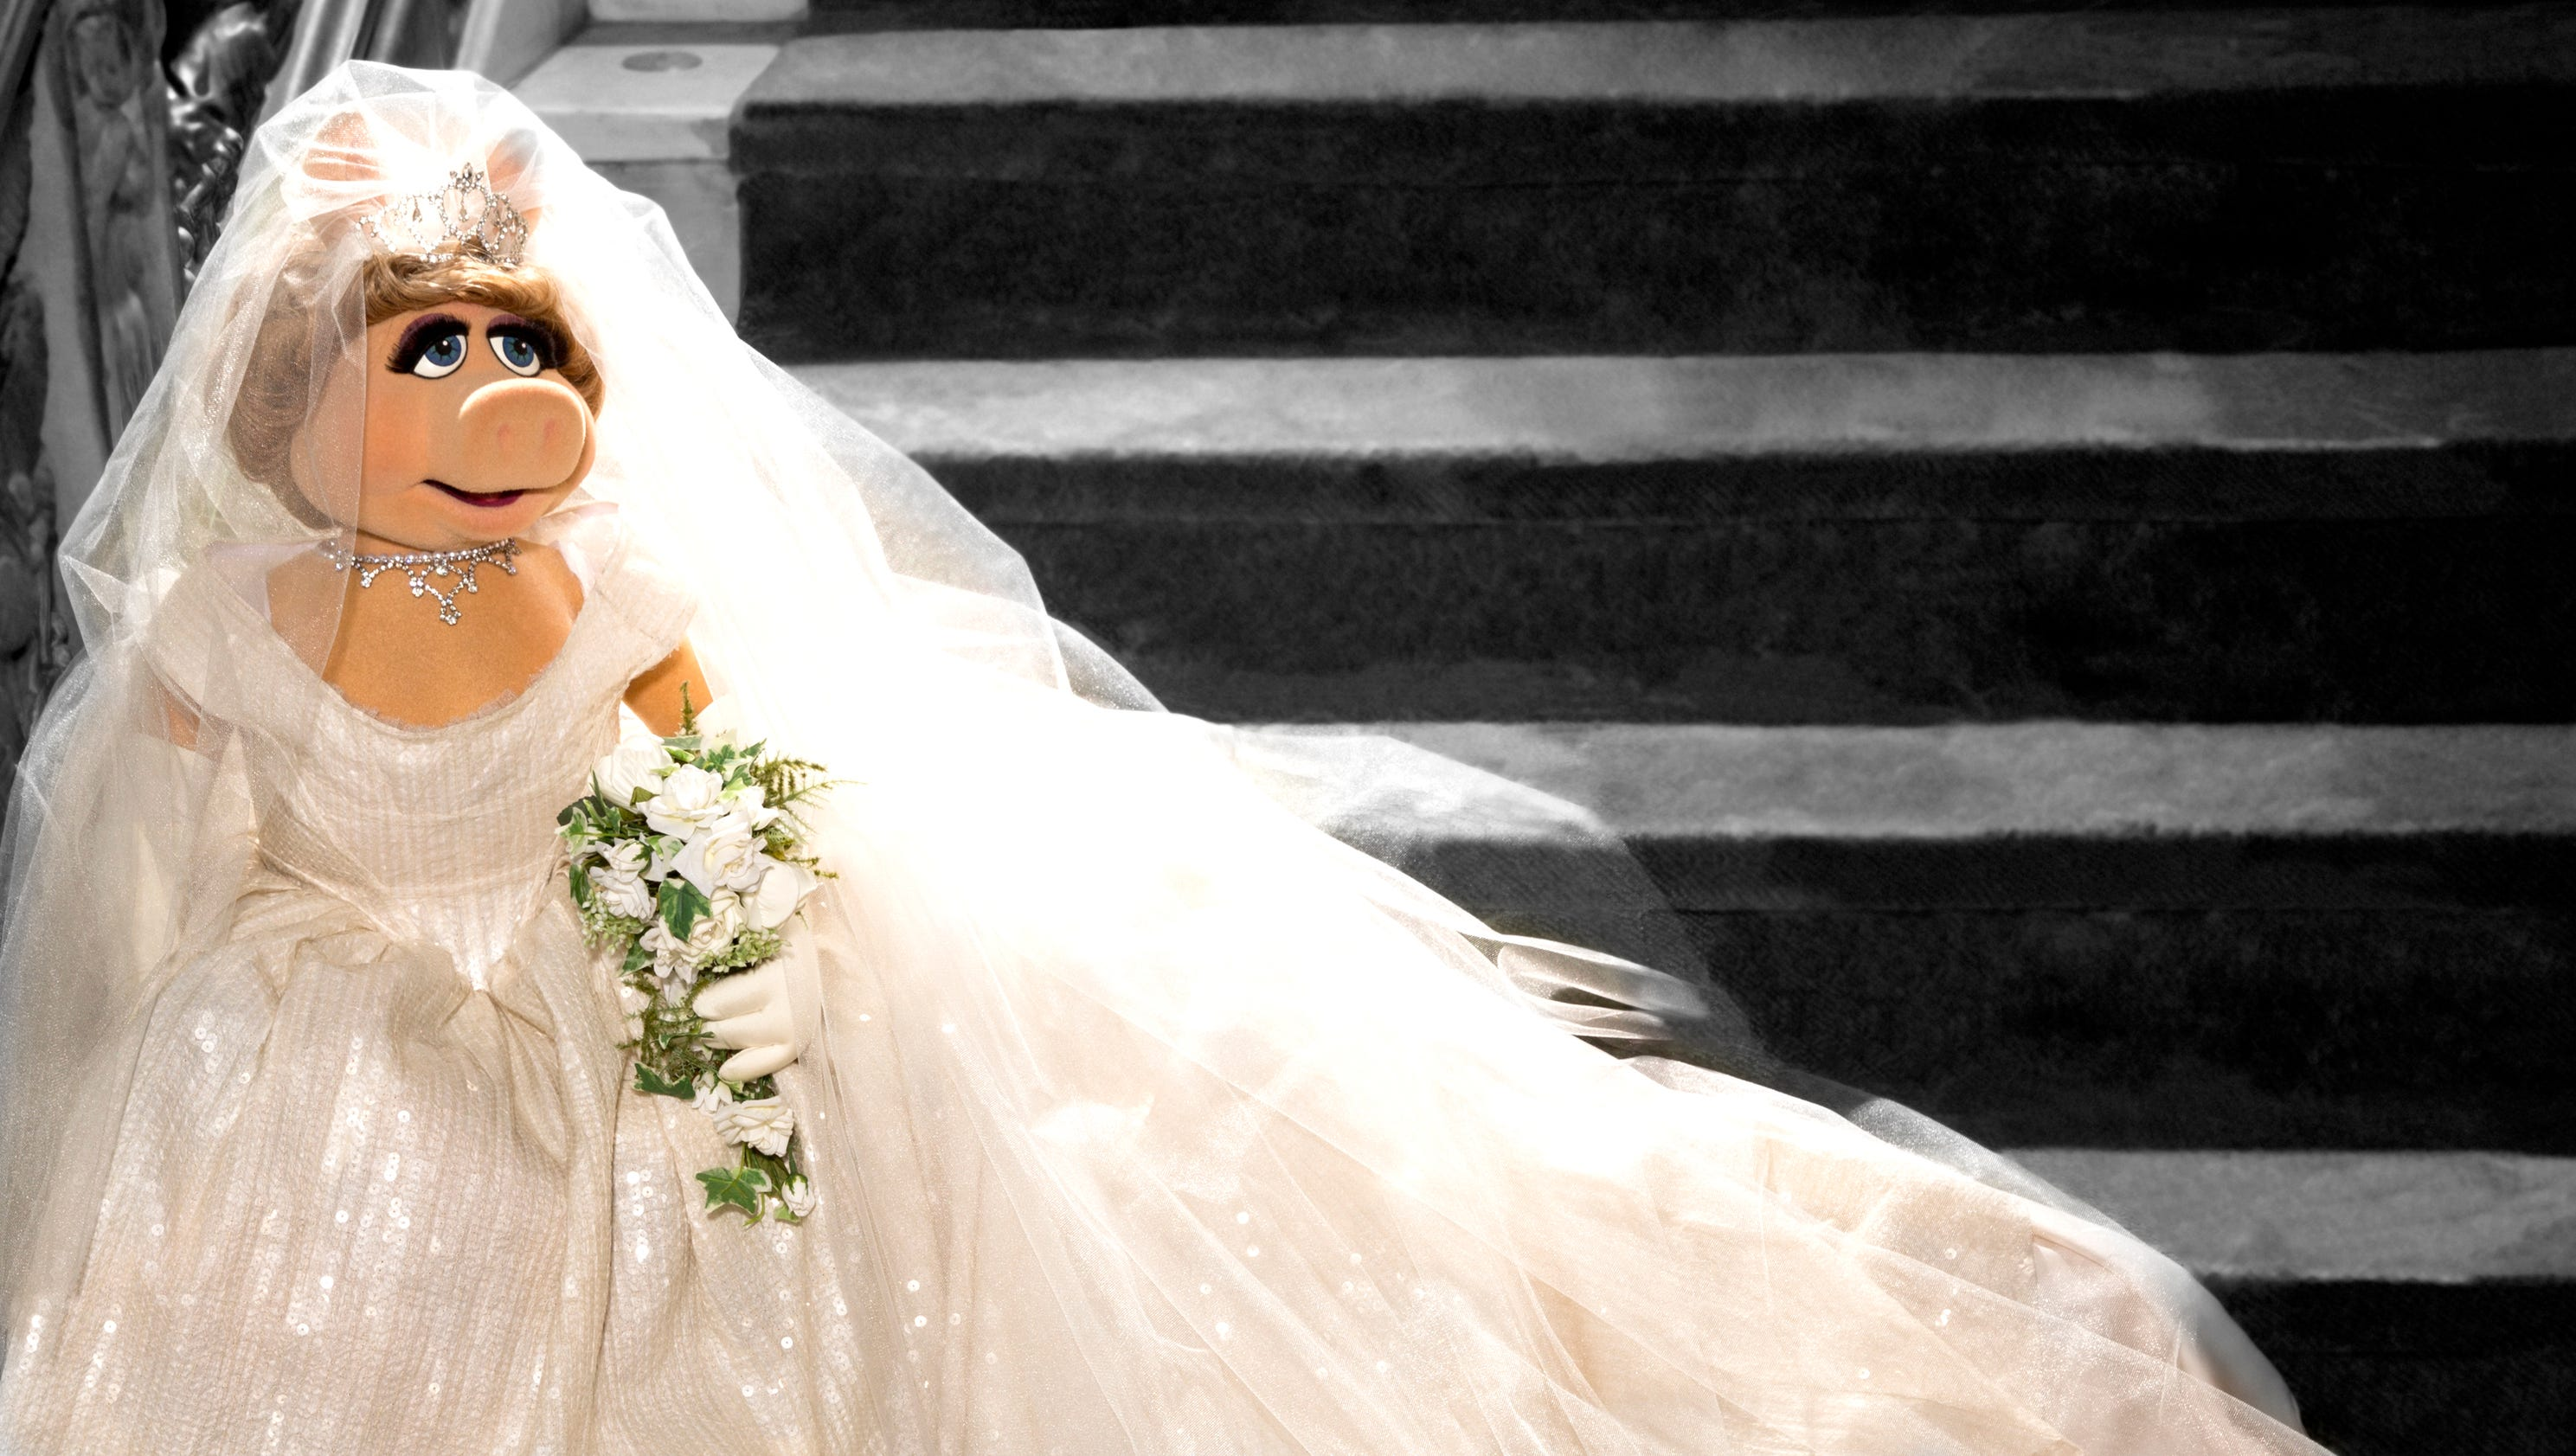 Miss piggy 39 s wedding dress revealed for Where can i sell my wedding dress locally